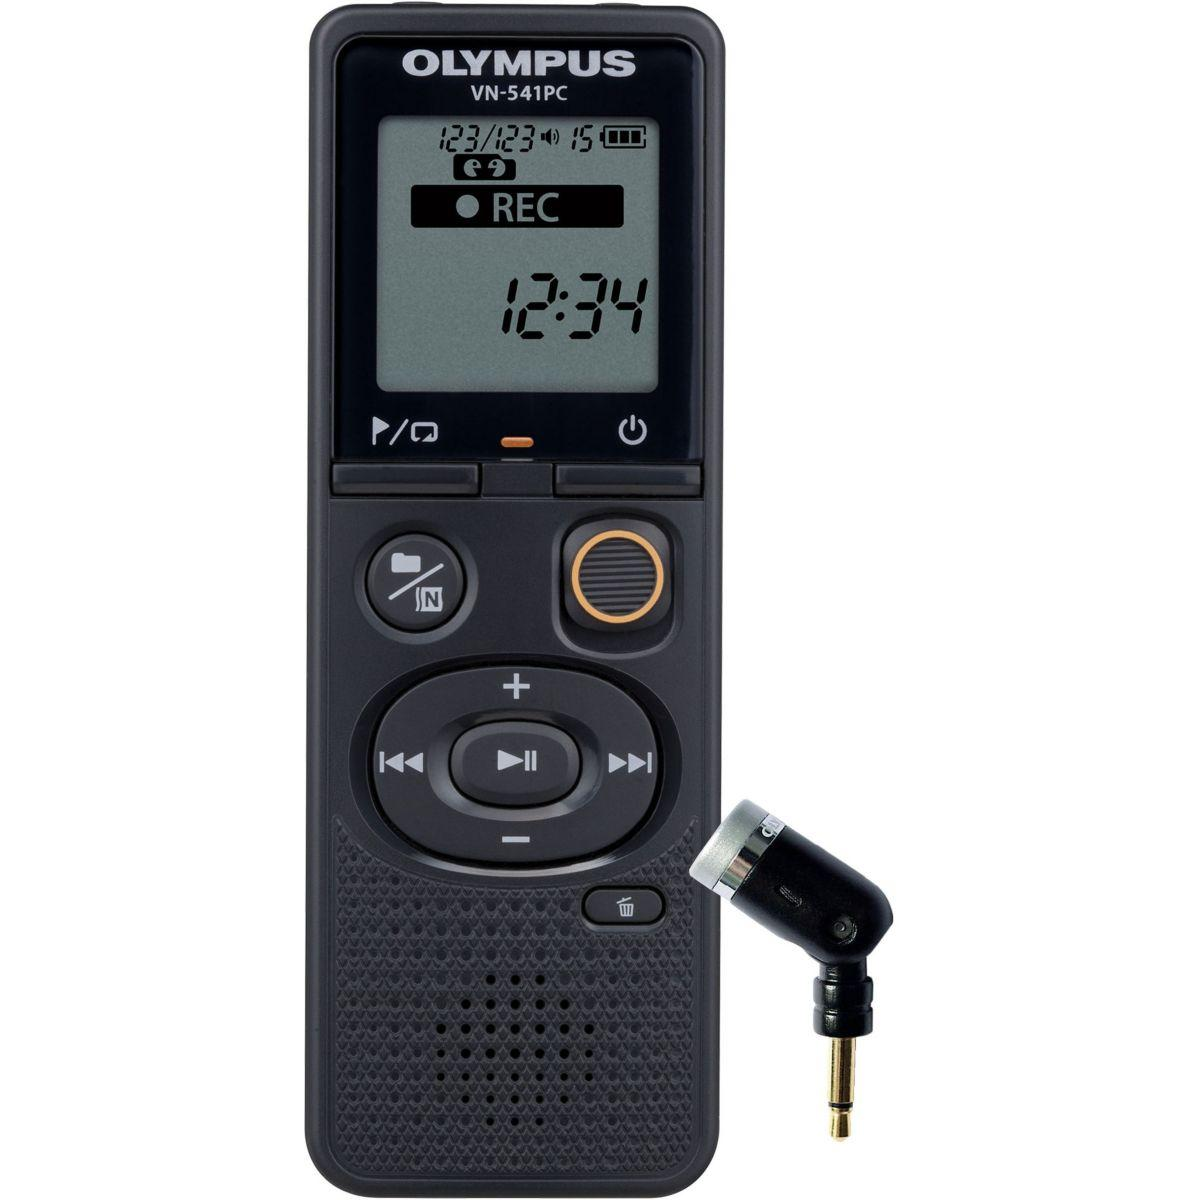 Dictaphone olympus vn-541pc + microphone me-52